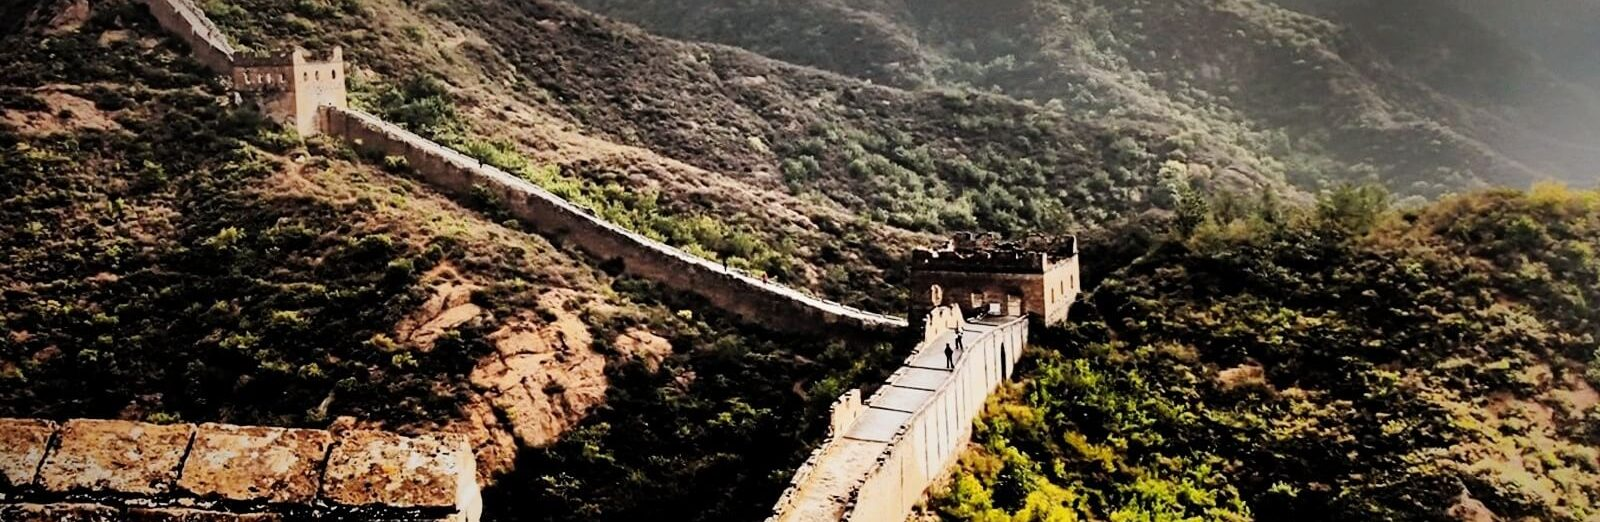 Great Wall 2 - China Tours